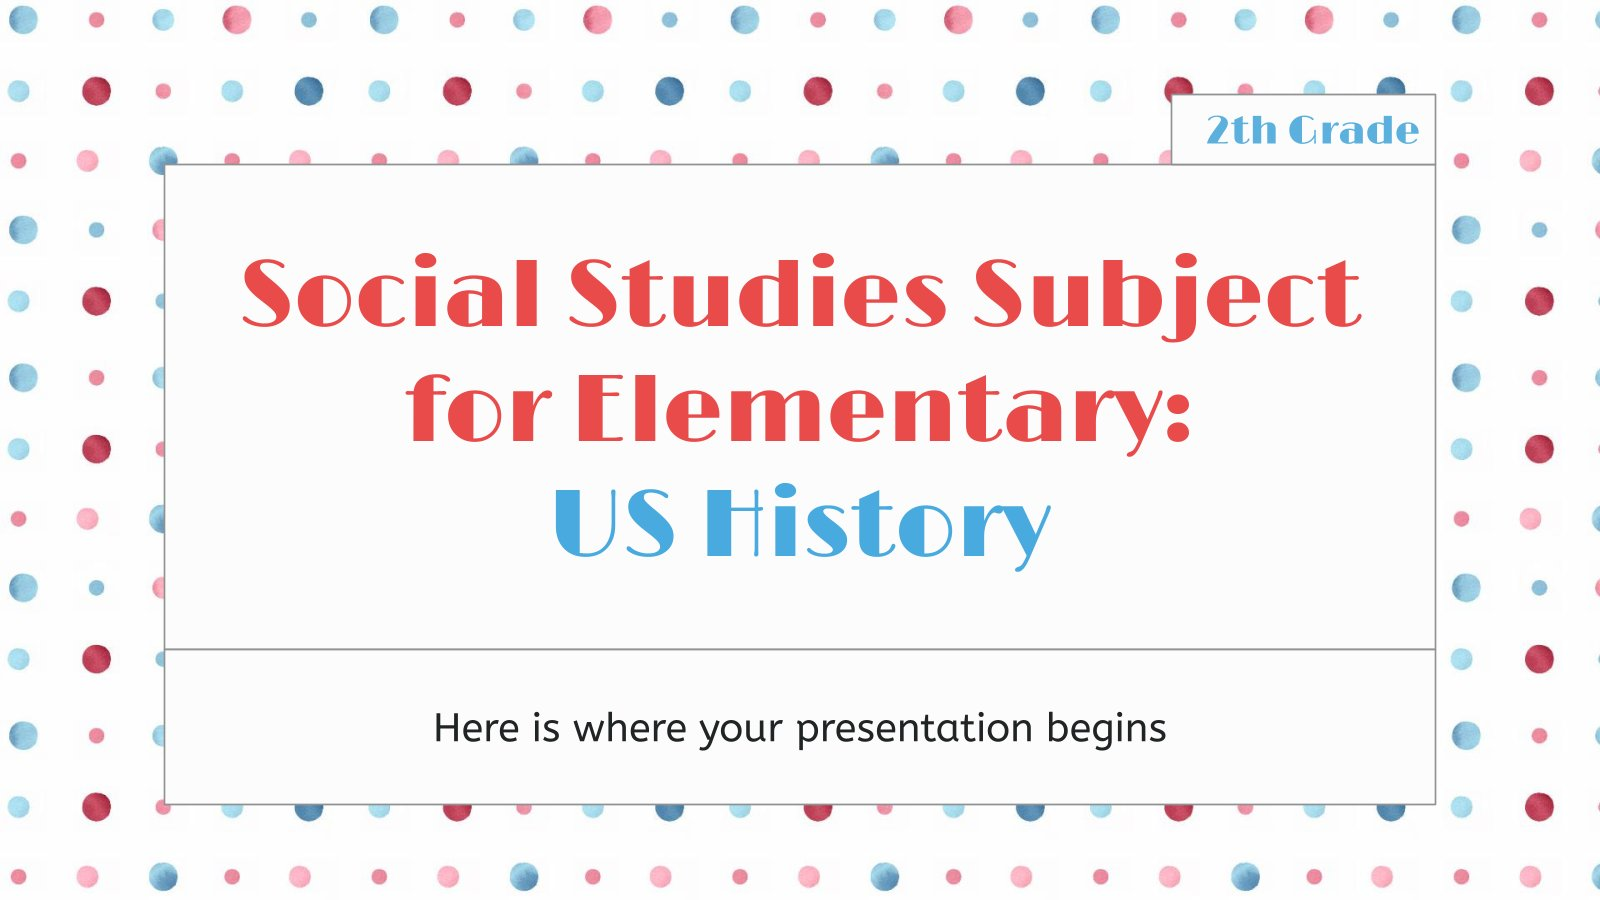 Social Studies Subject for Elementary - 2th Grade: US History presentation template